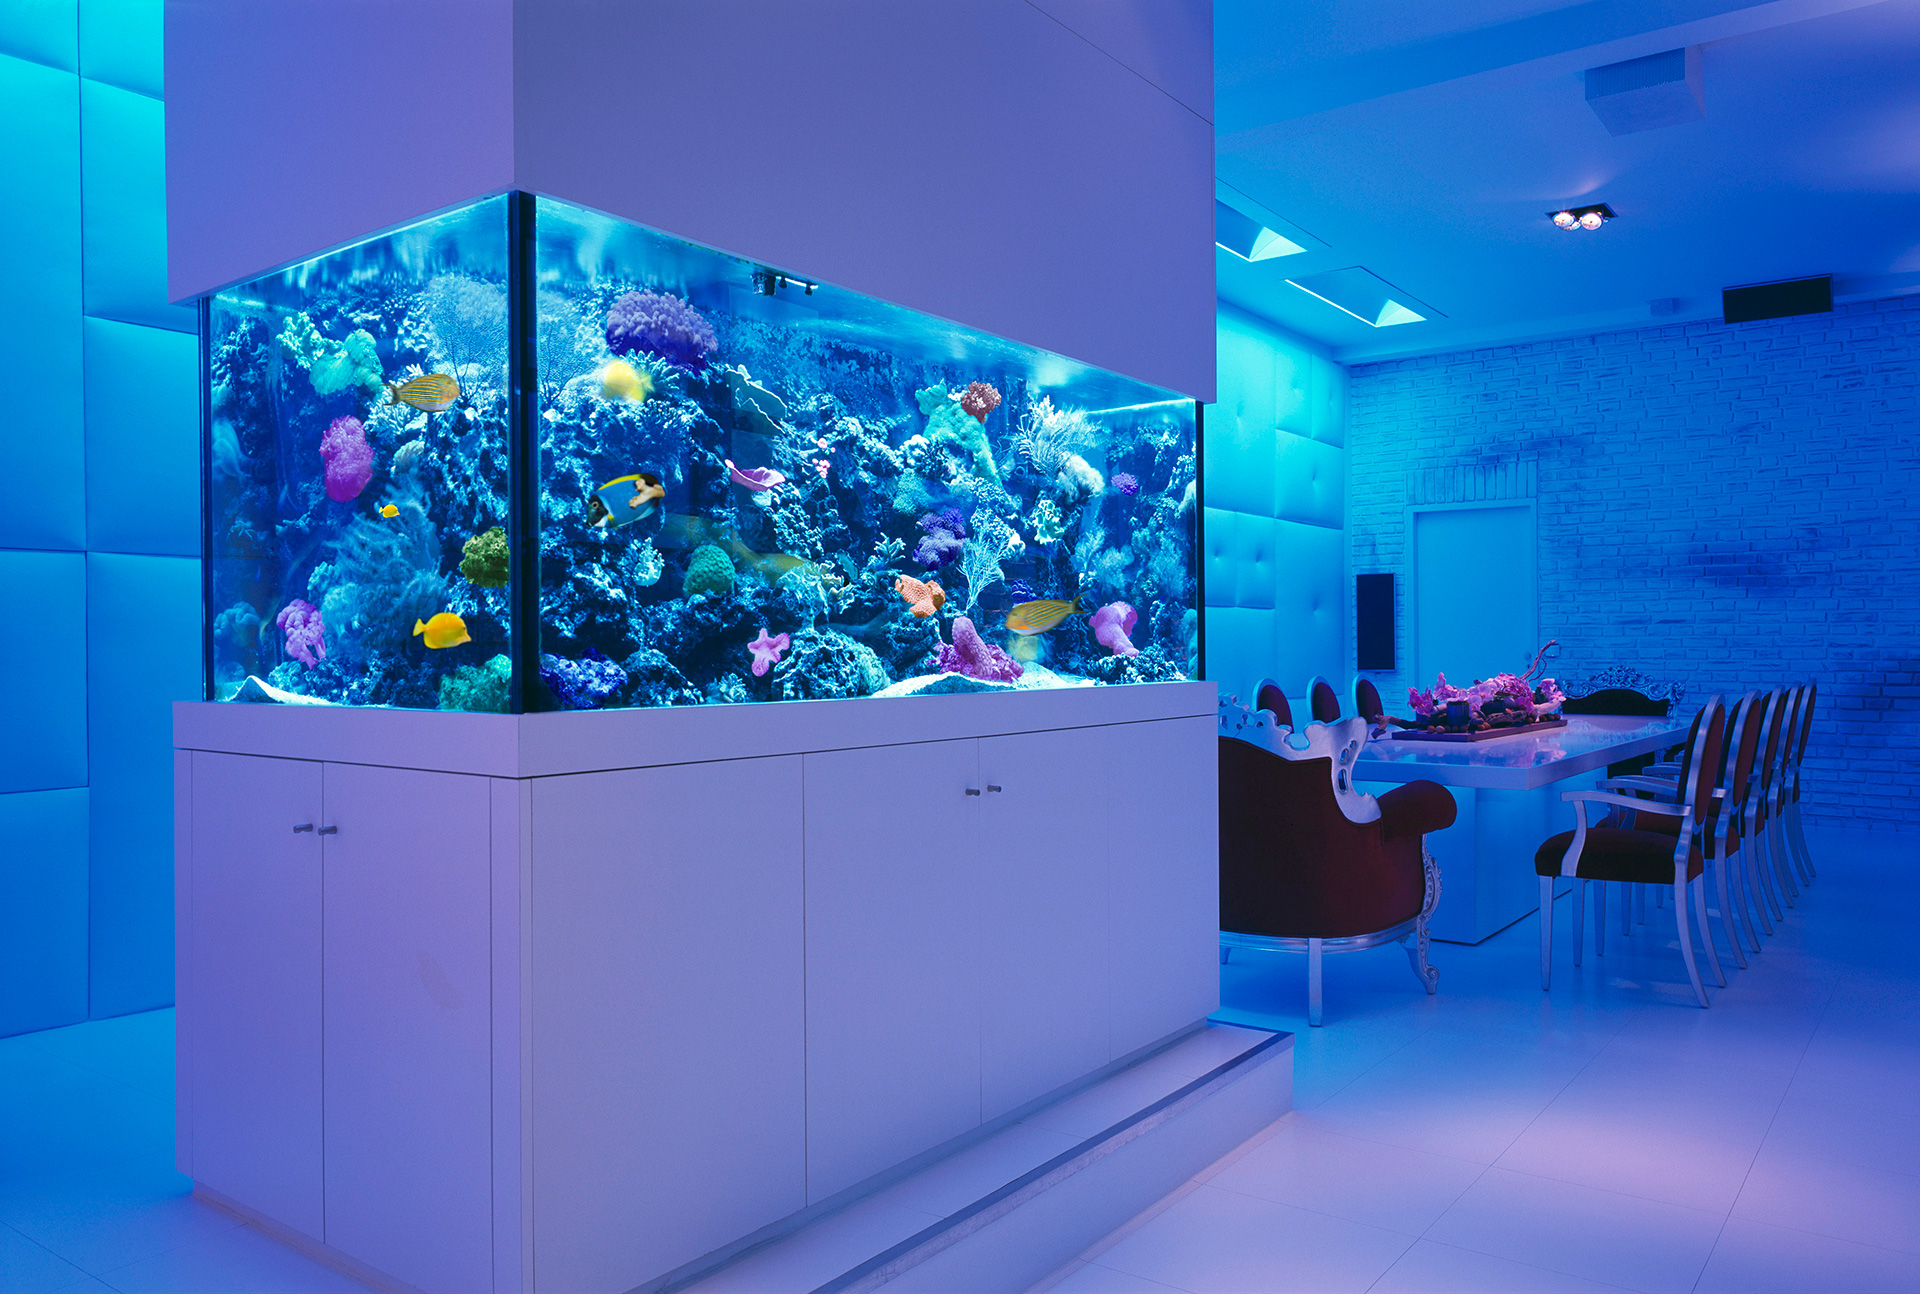 Things You Should Know About Aquarium